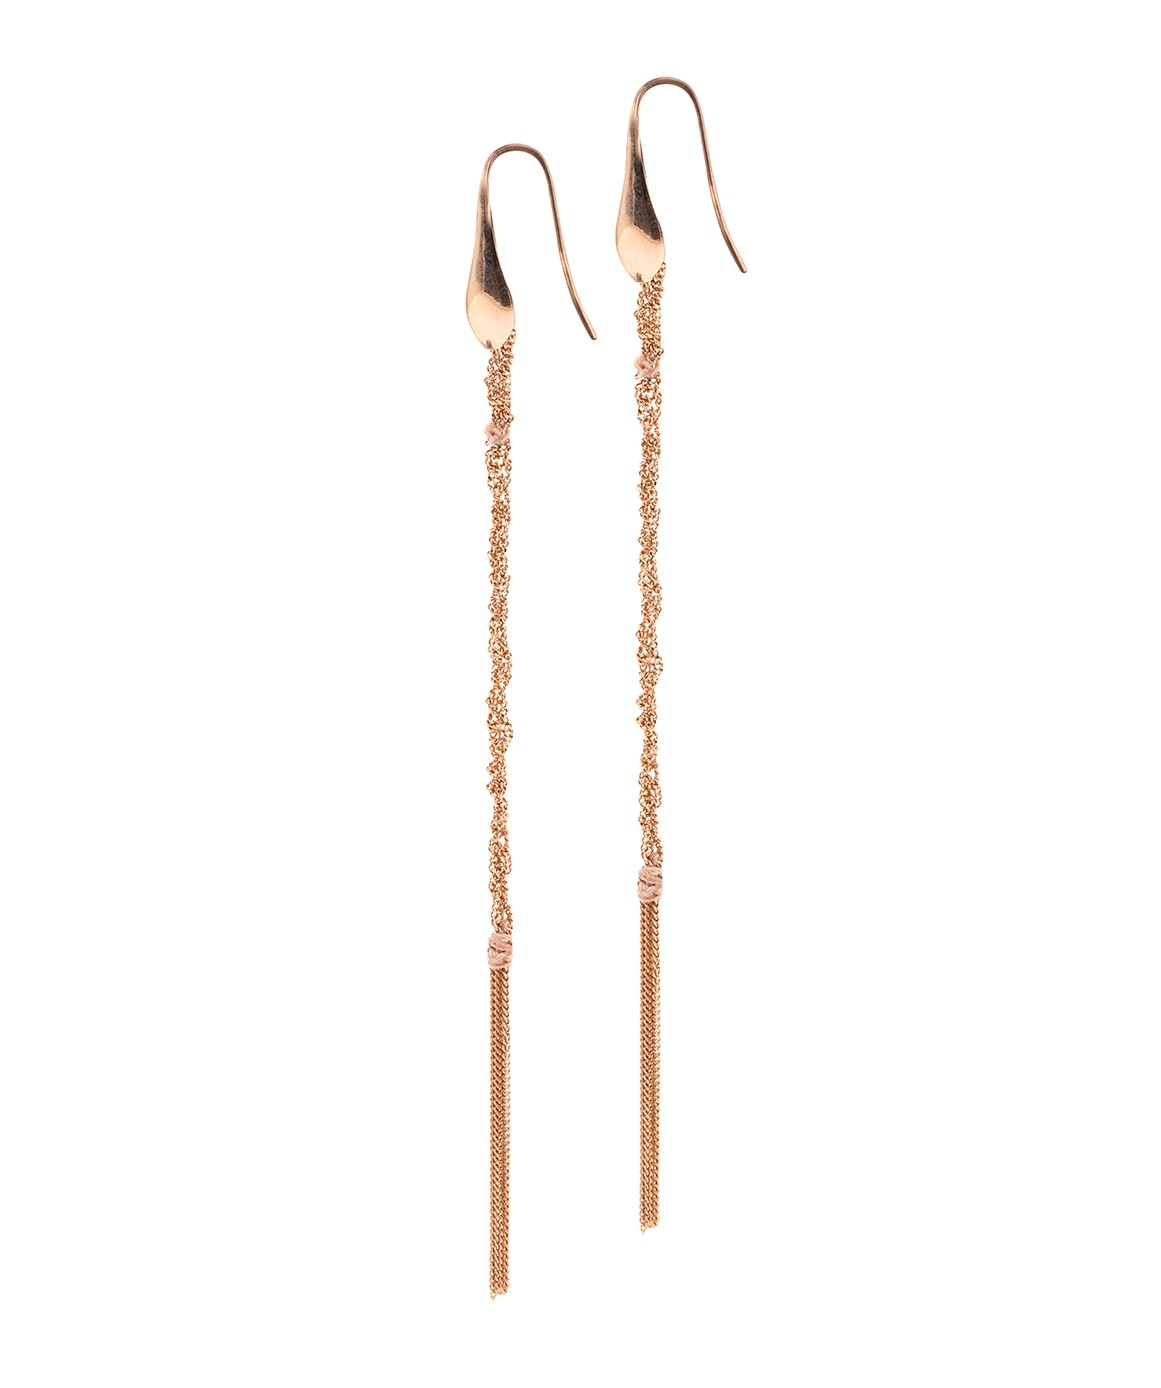 PERLAGE Earrings in Sterling Silver 14Kt. Rose gold plated